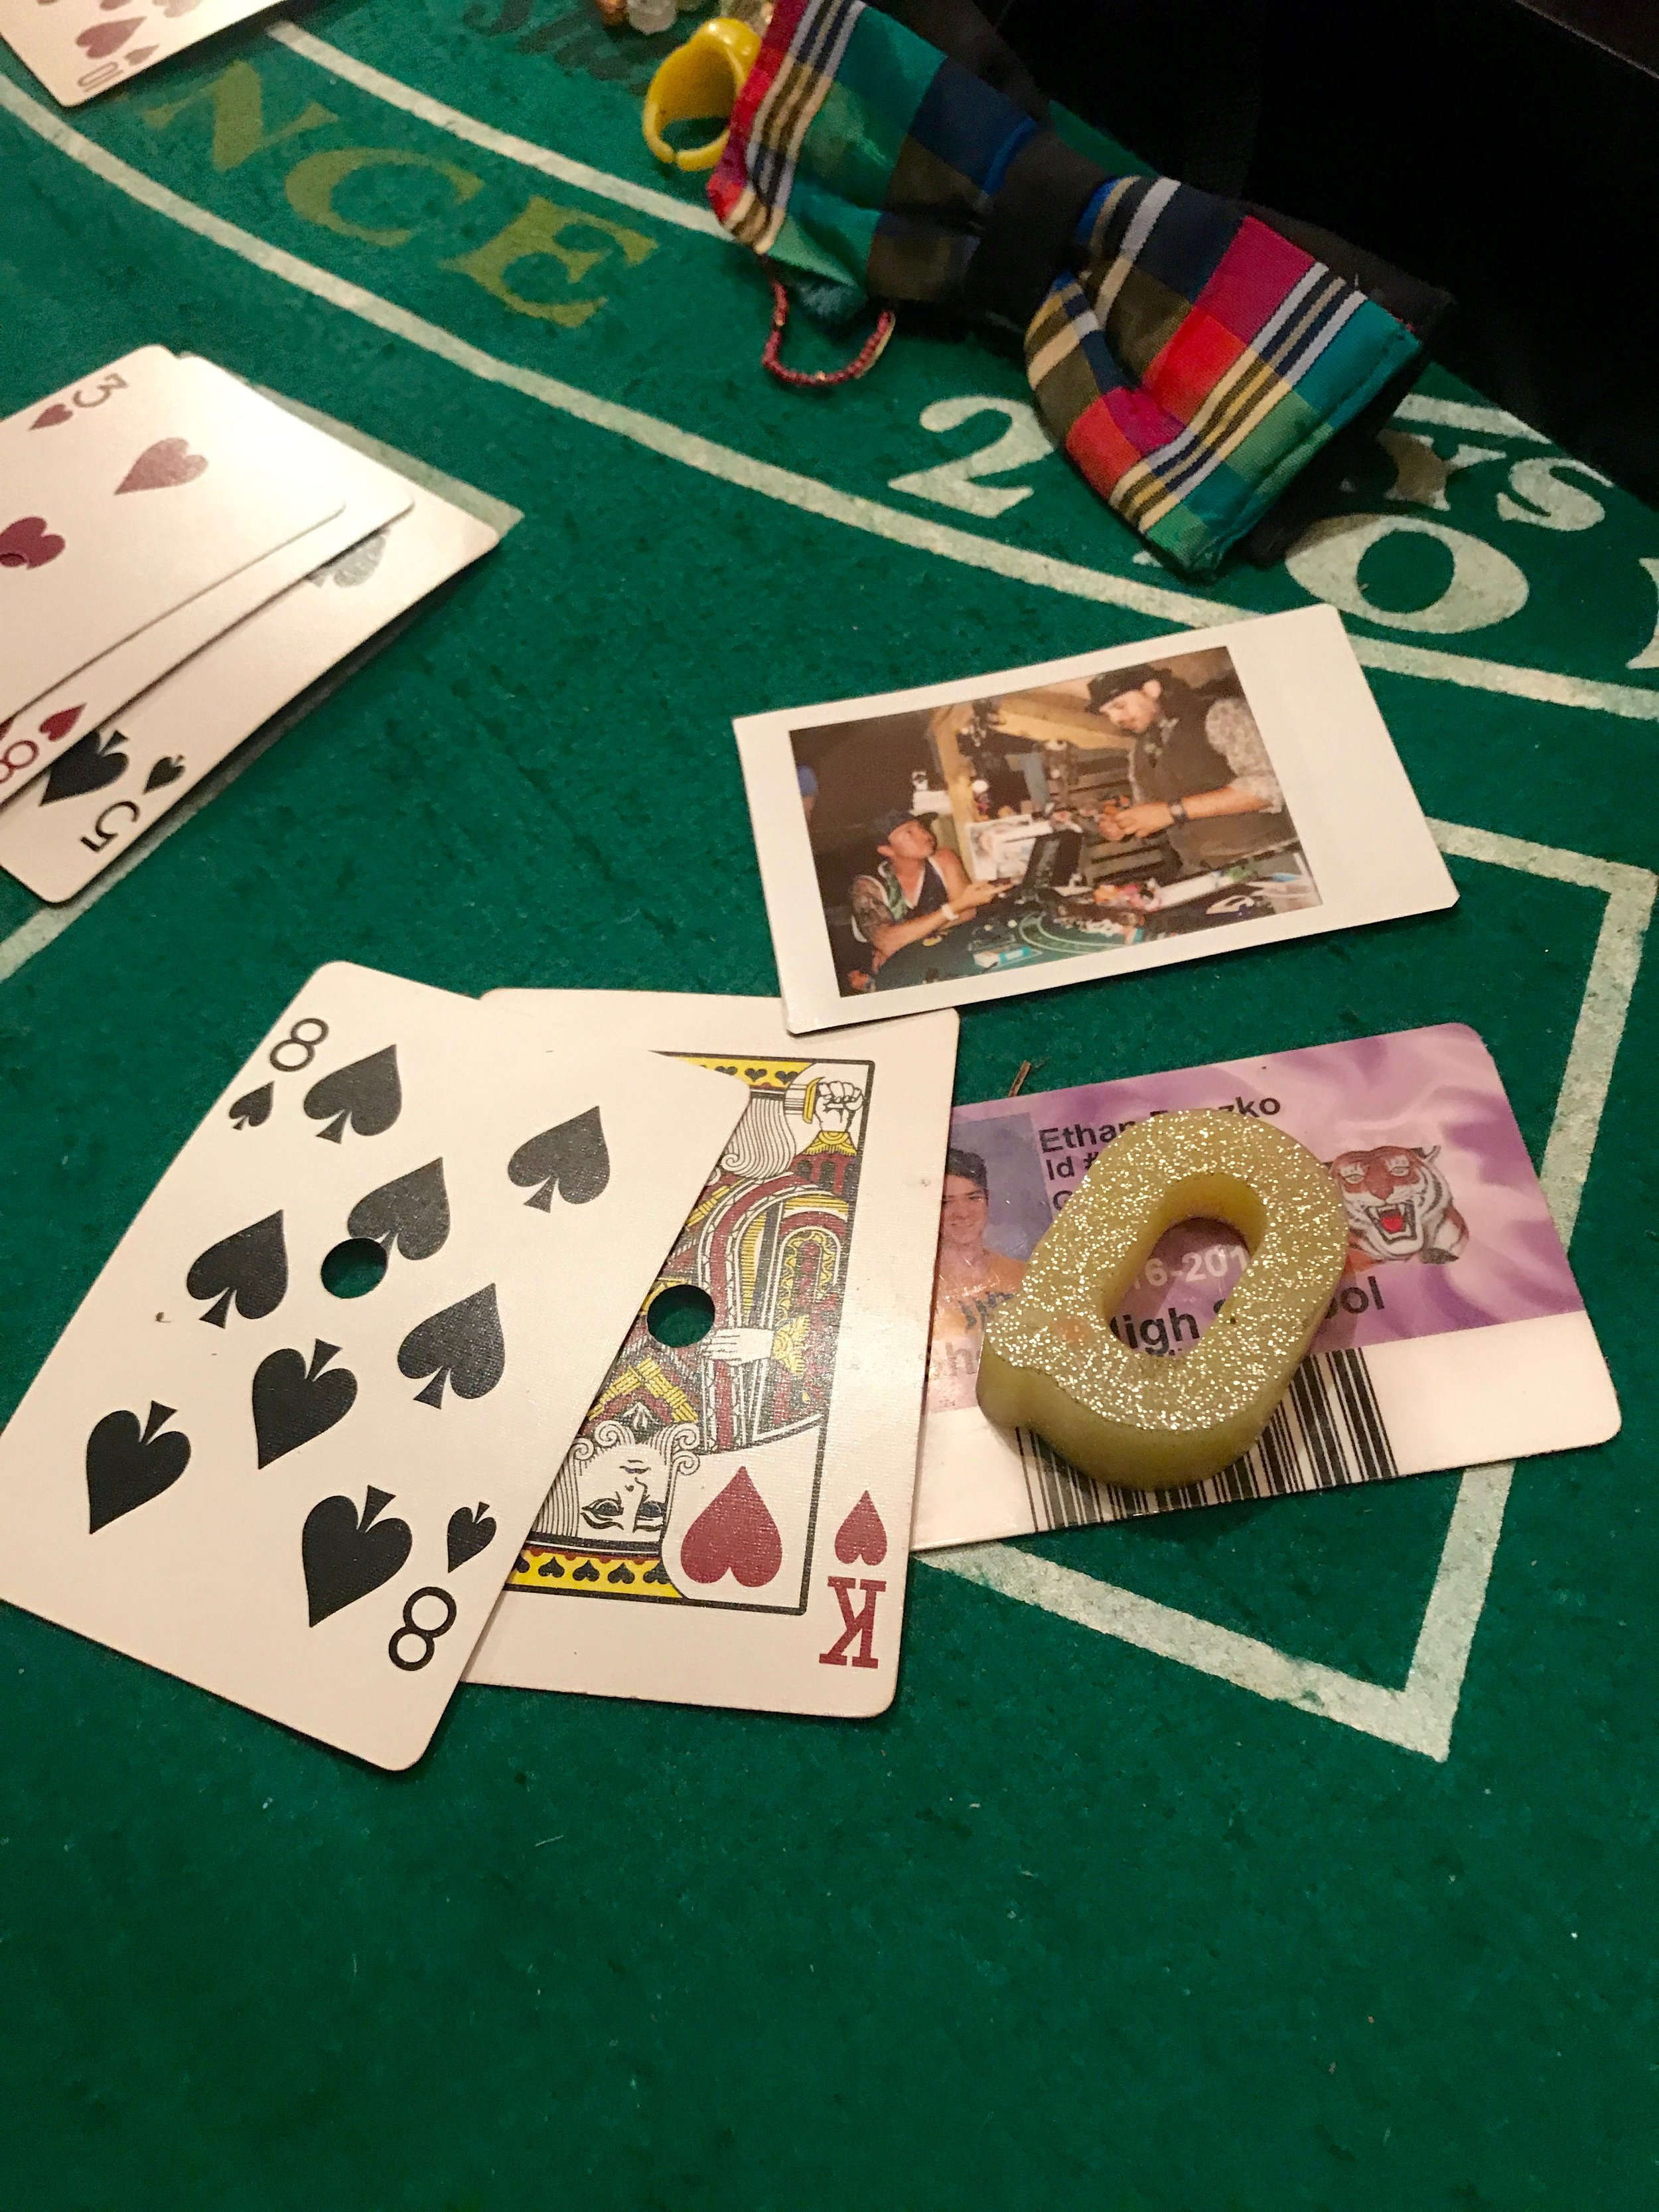 Of course we managed to find Blackjack...somehow